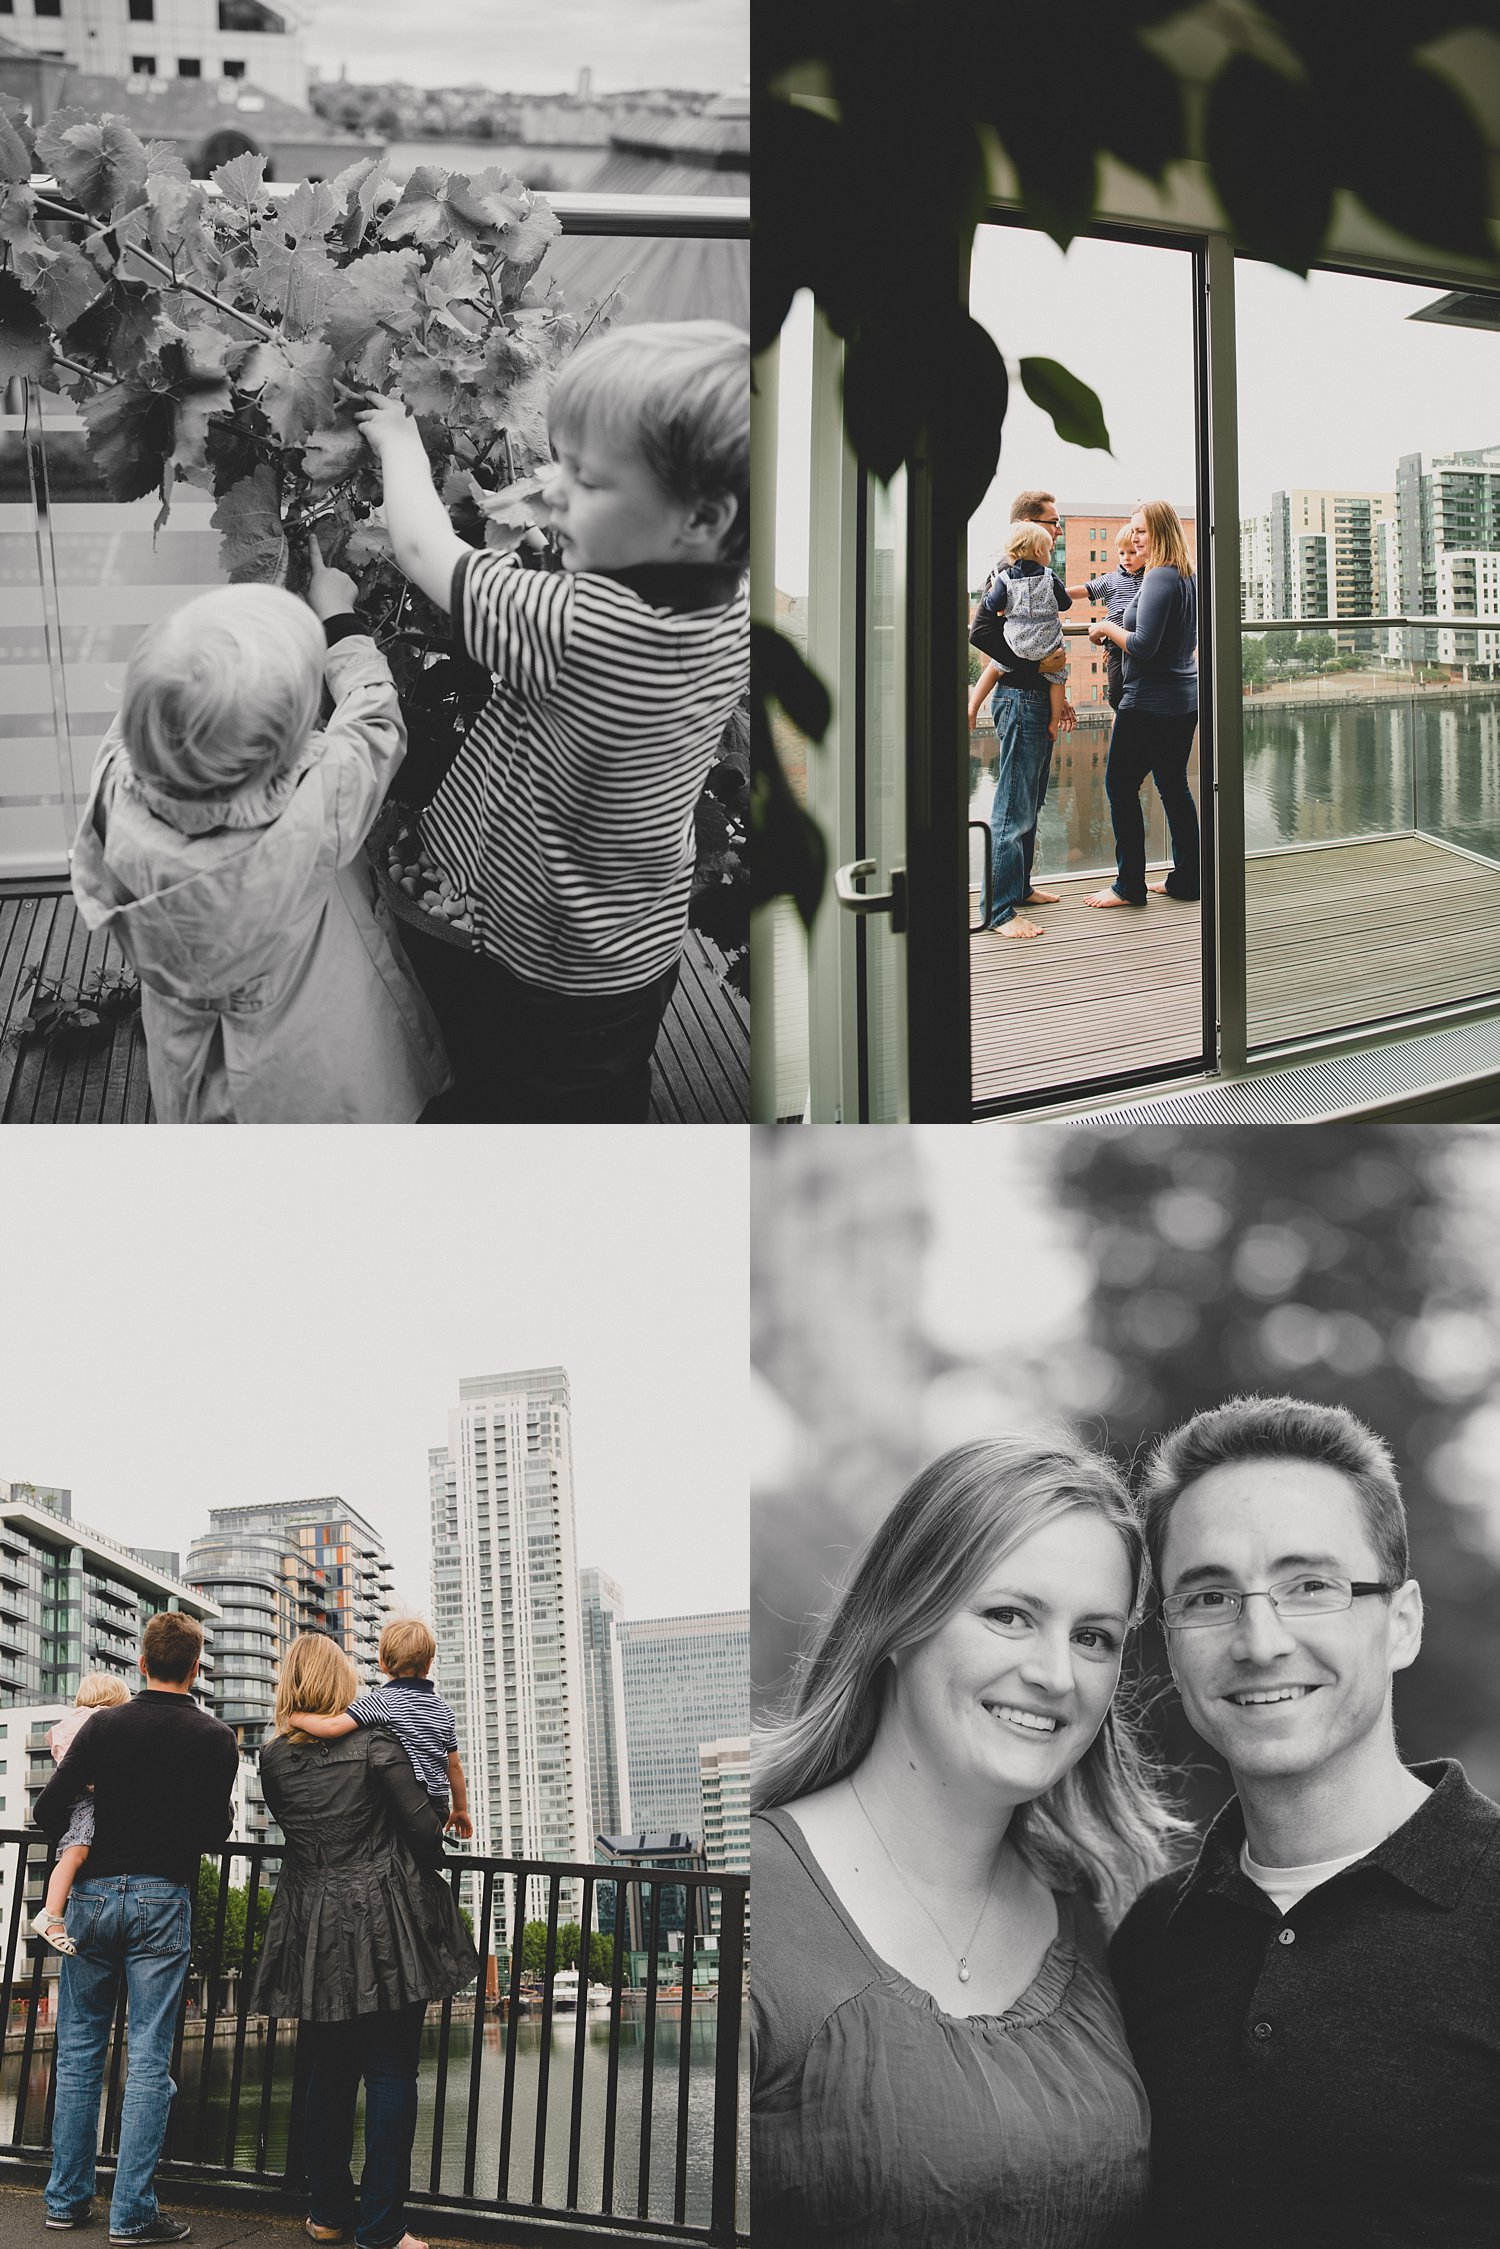 parents and kids photos - 5 Tips for Doing Lifestyle Photo Sessions